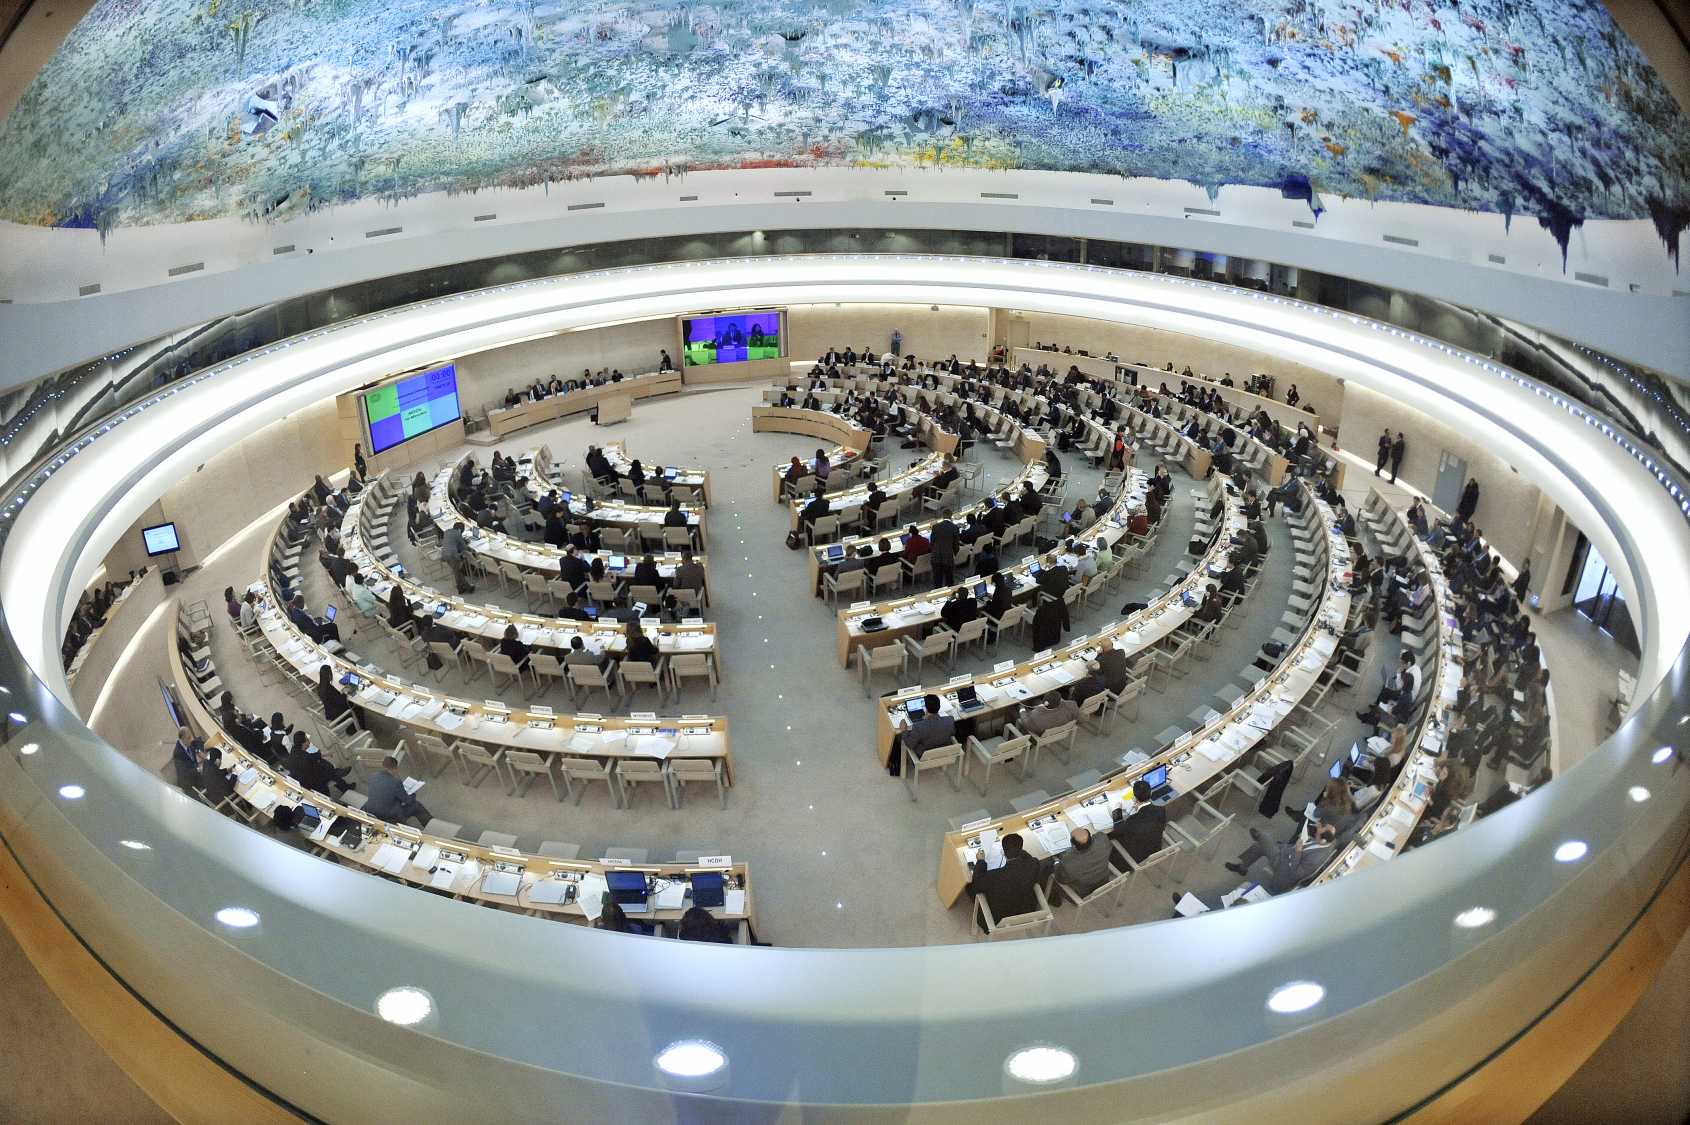 Negotiations have already taken place at UN Human Rights Council. Image credit: United Nations